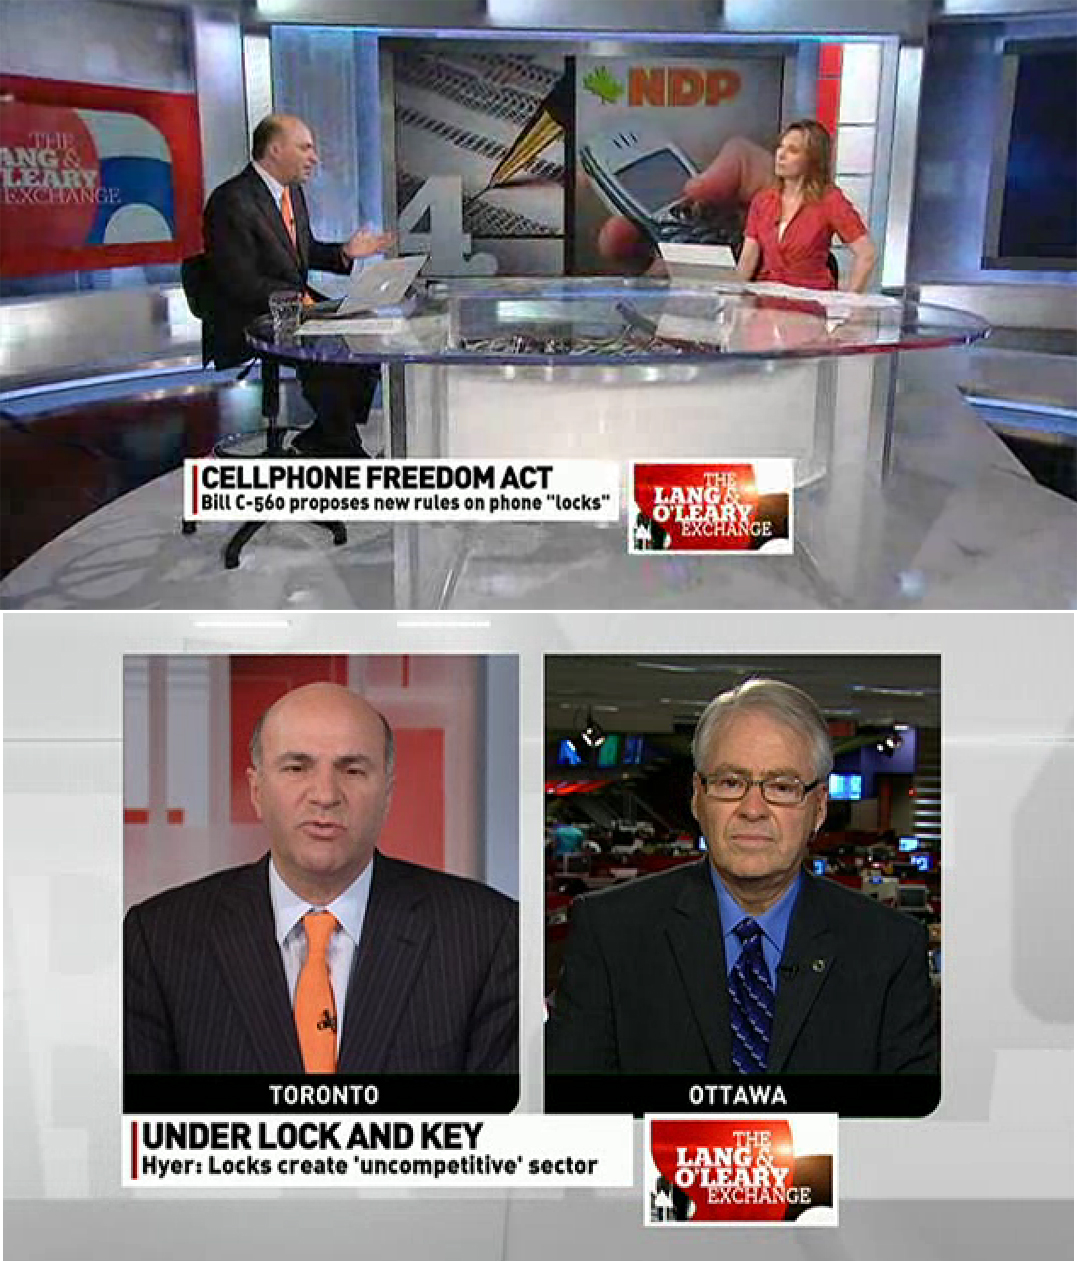 National media attention included CBC TV's Lang & O'Leary Exchange